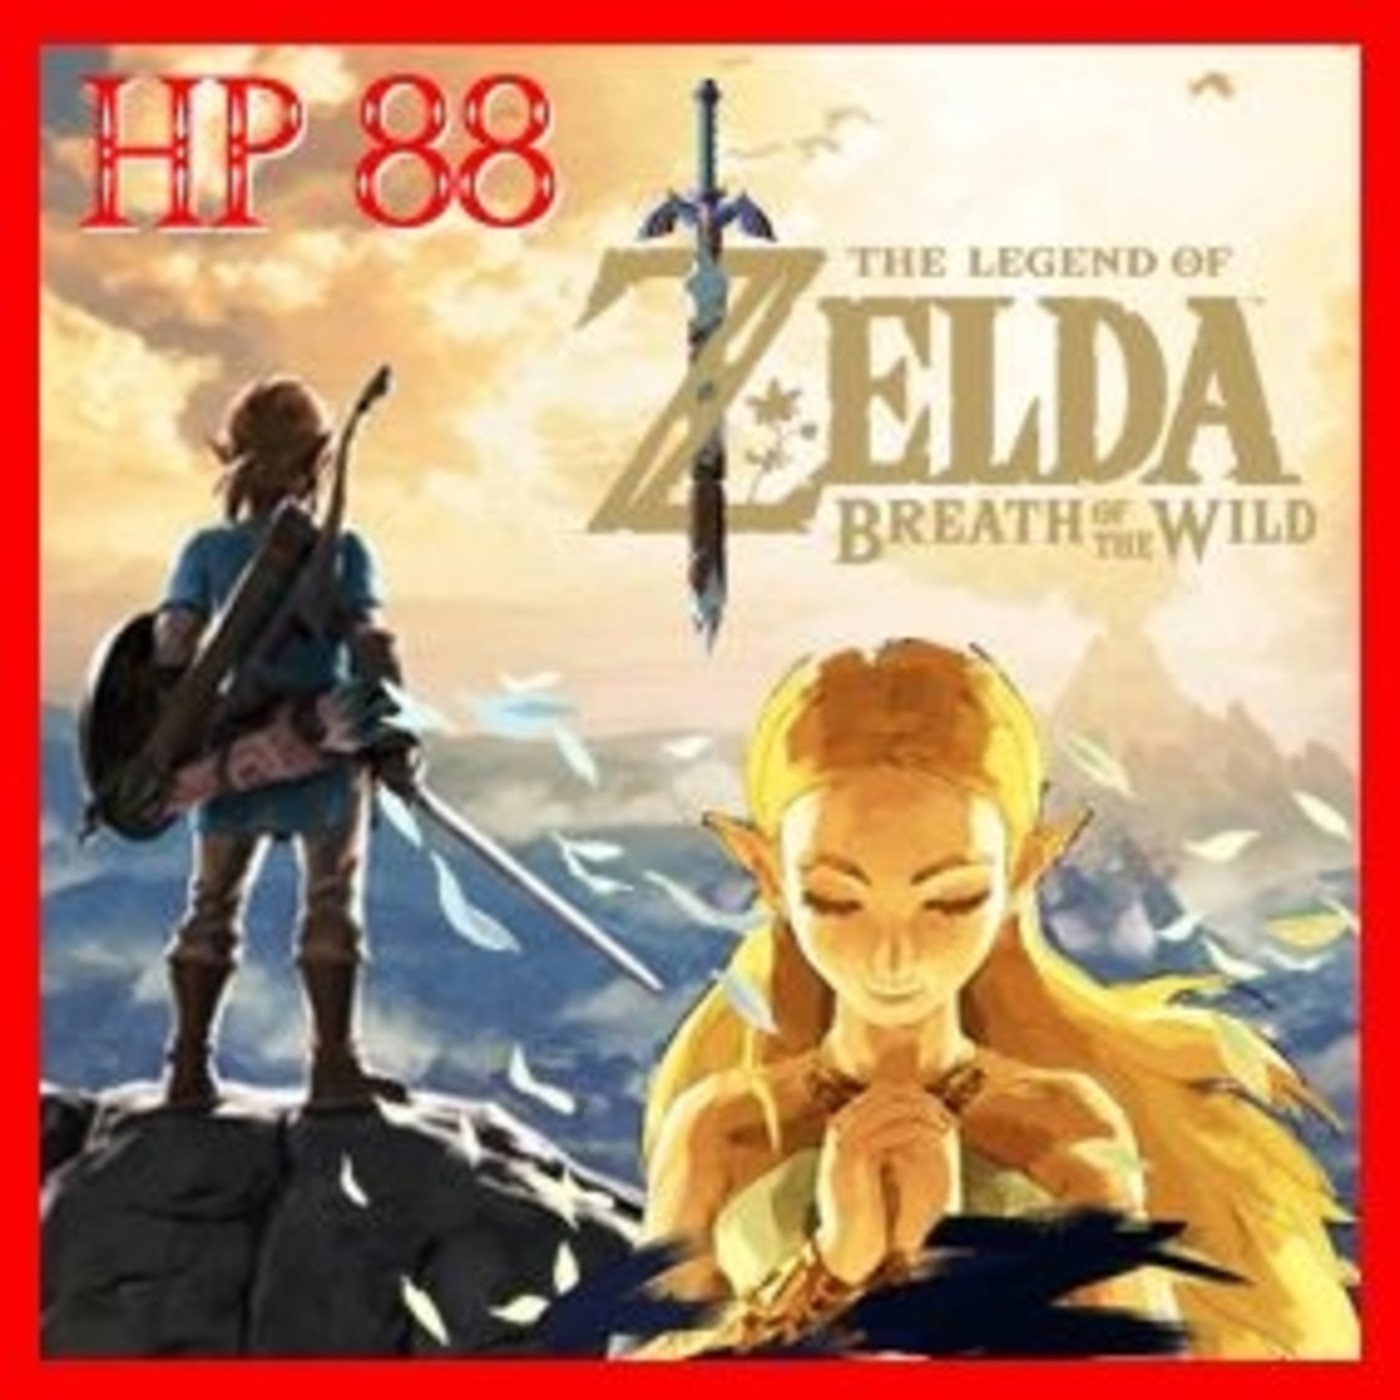 Hyrule Project Episodio 88: Especial The Legend of Zelda: Breath of the Wild